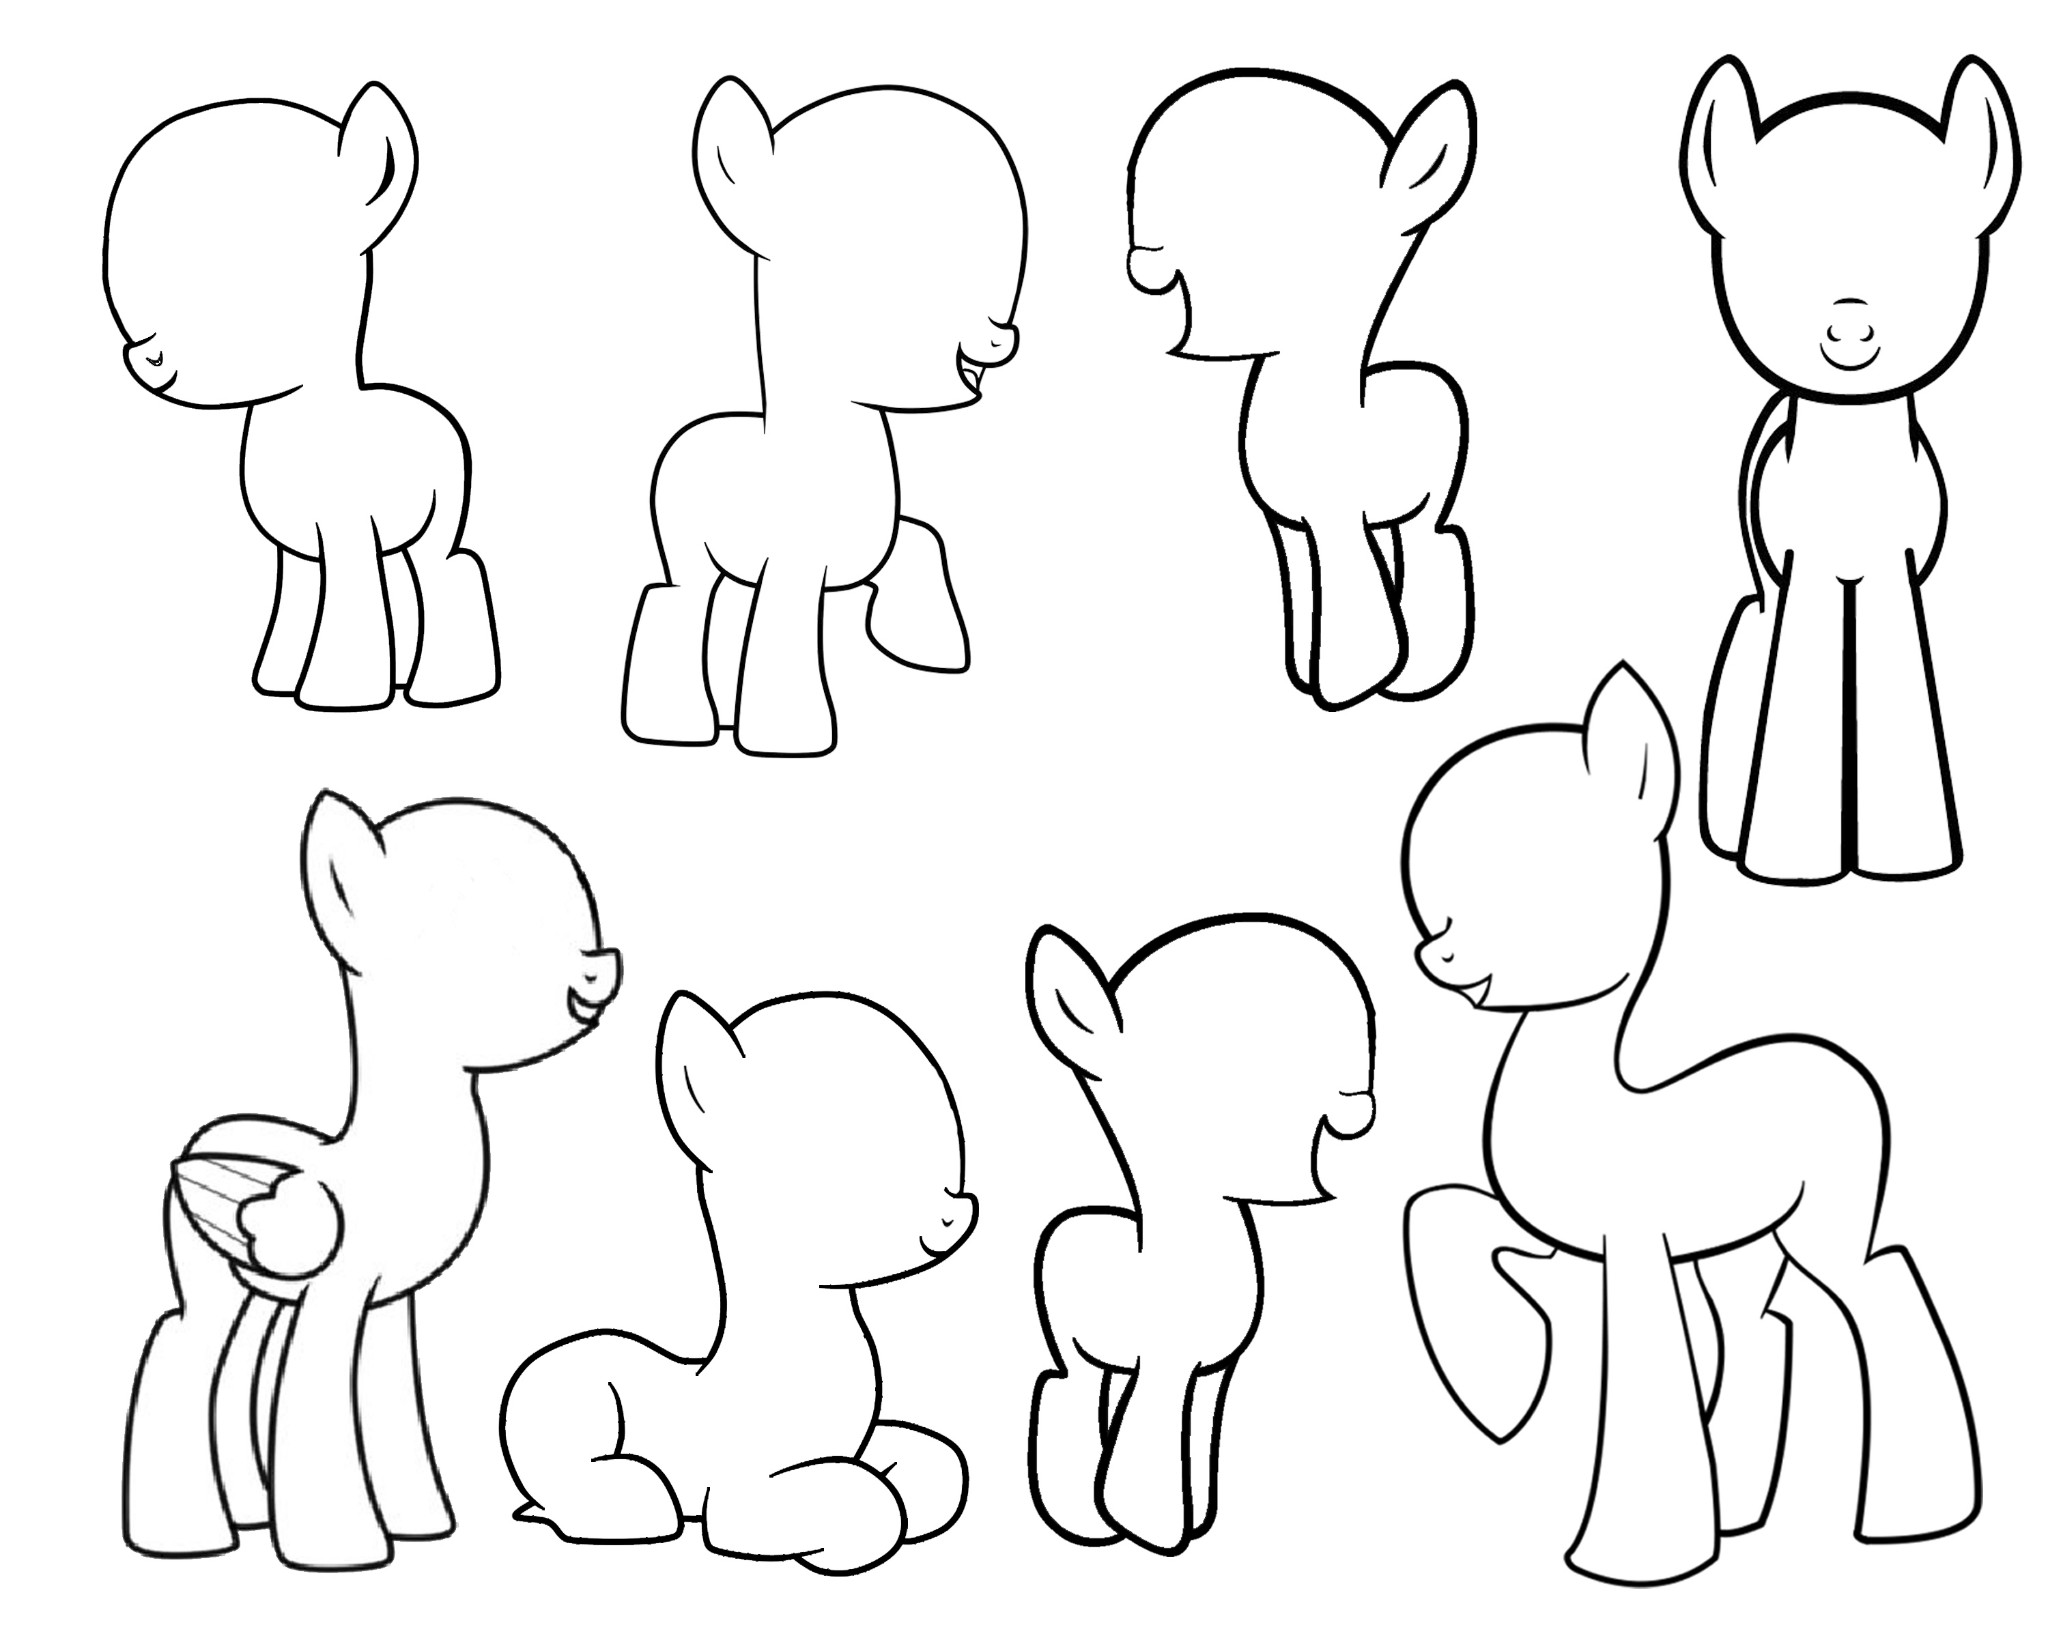 Drawn my little pony blank Own for pony pony own